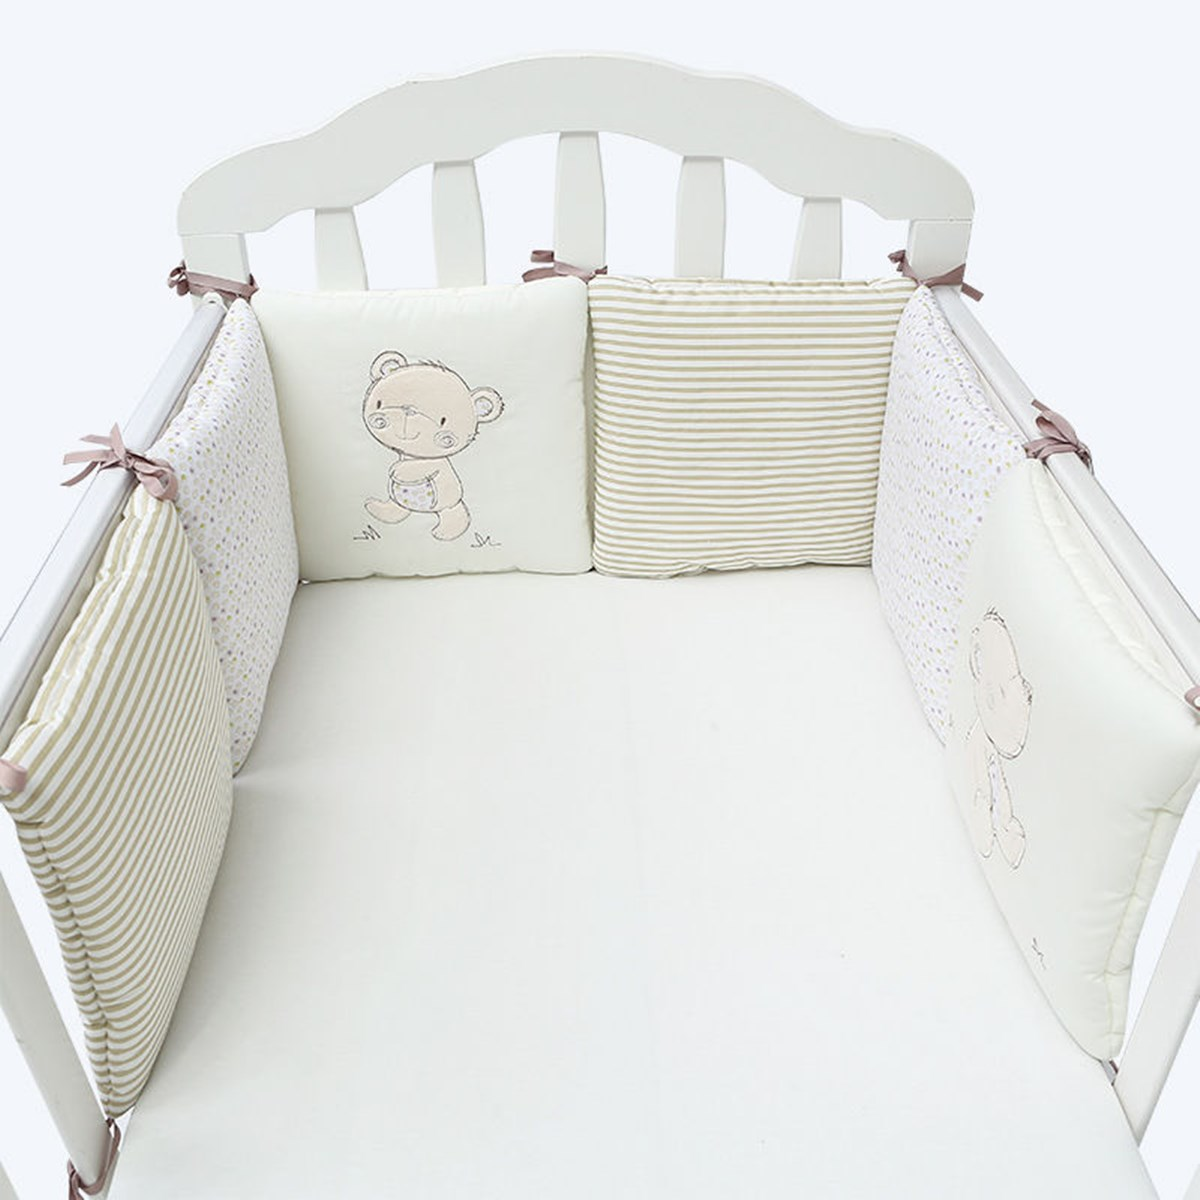 Crib bumper for sale philippines - Baby Infant Cot Crib Bumper Cushion Pad Safety Protector Toddler Nursery Bedding Baby Sleeping Protection Home